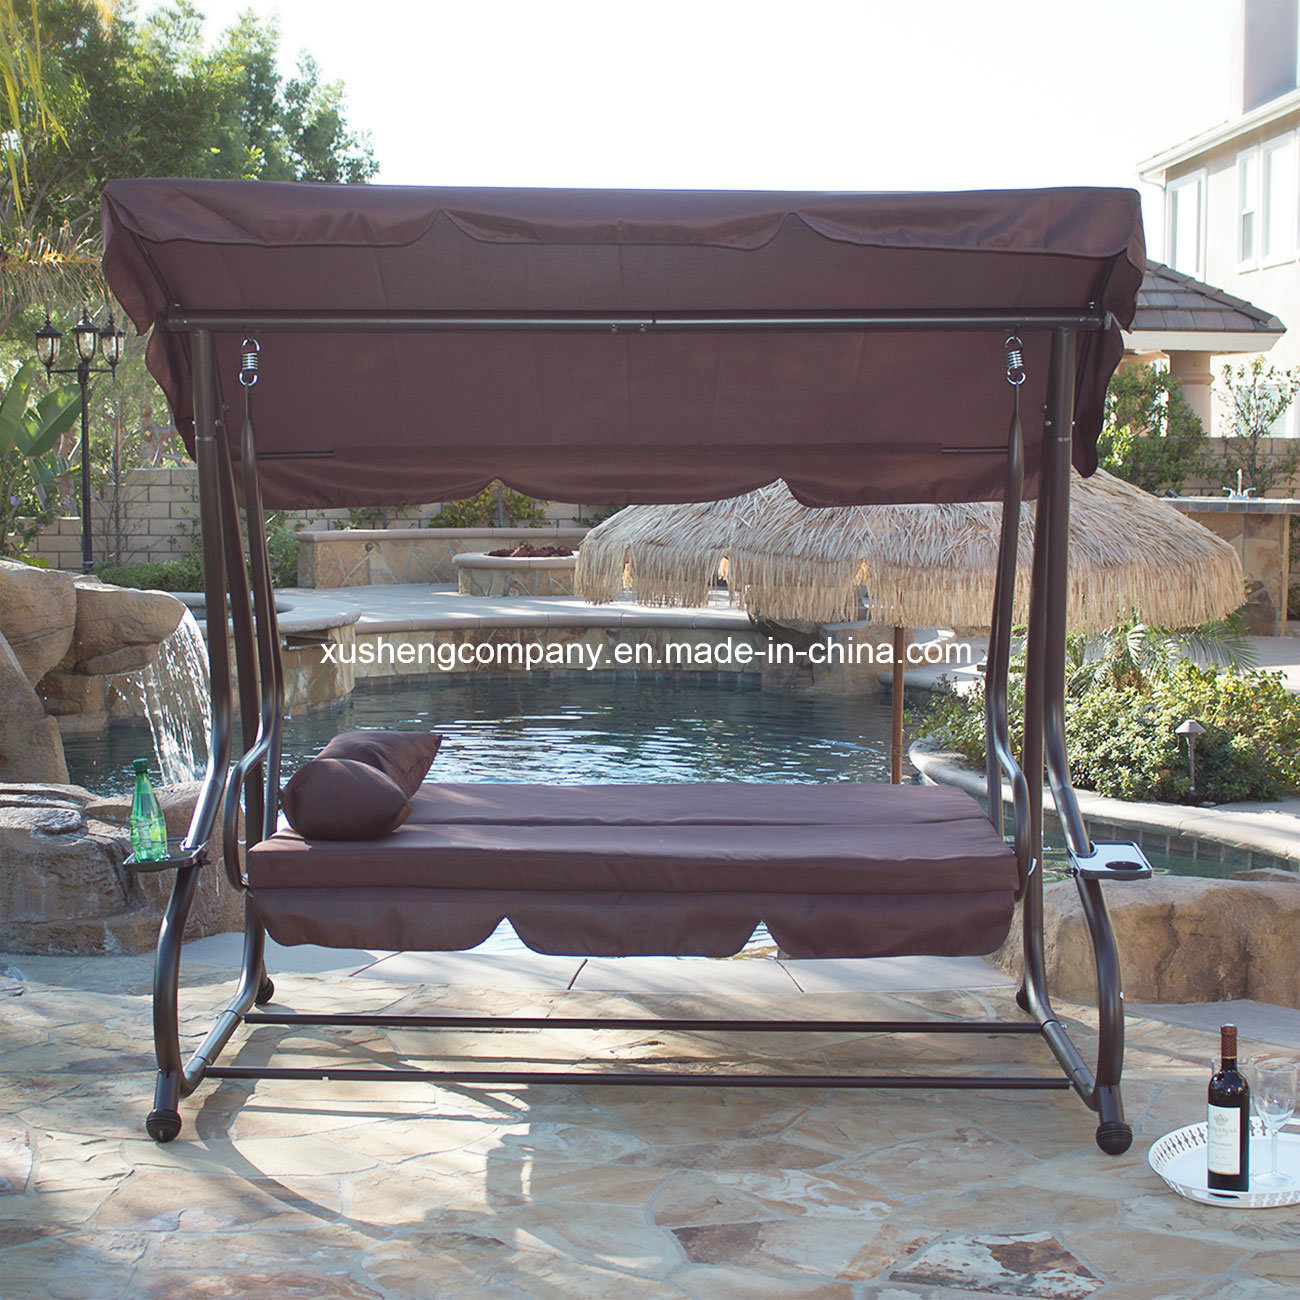 Deluxe 3 Seater Patio Garden Swing Chair/Bed with 2 Pillows